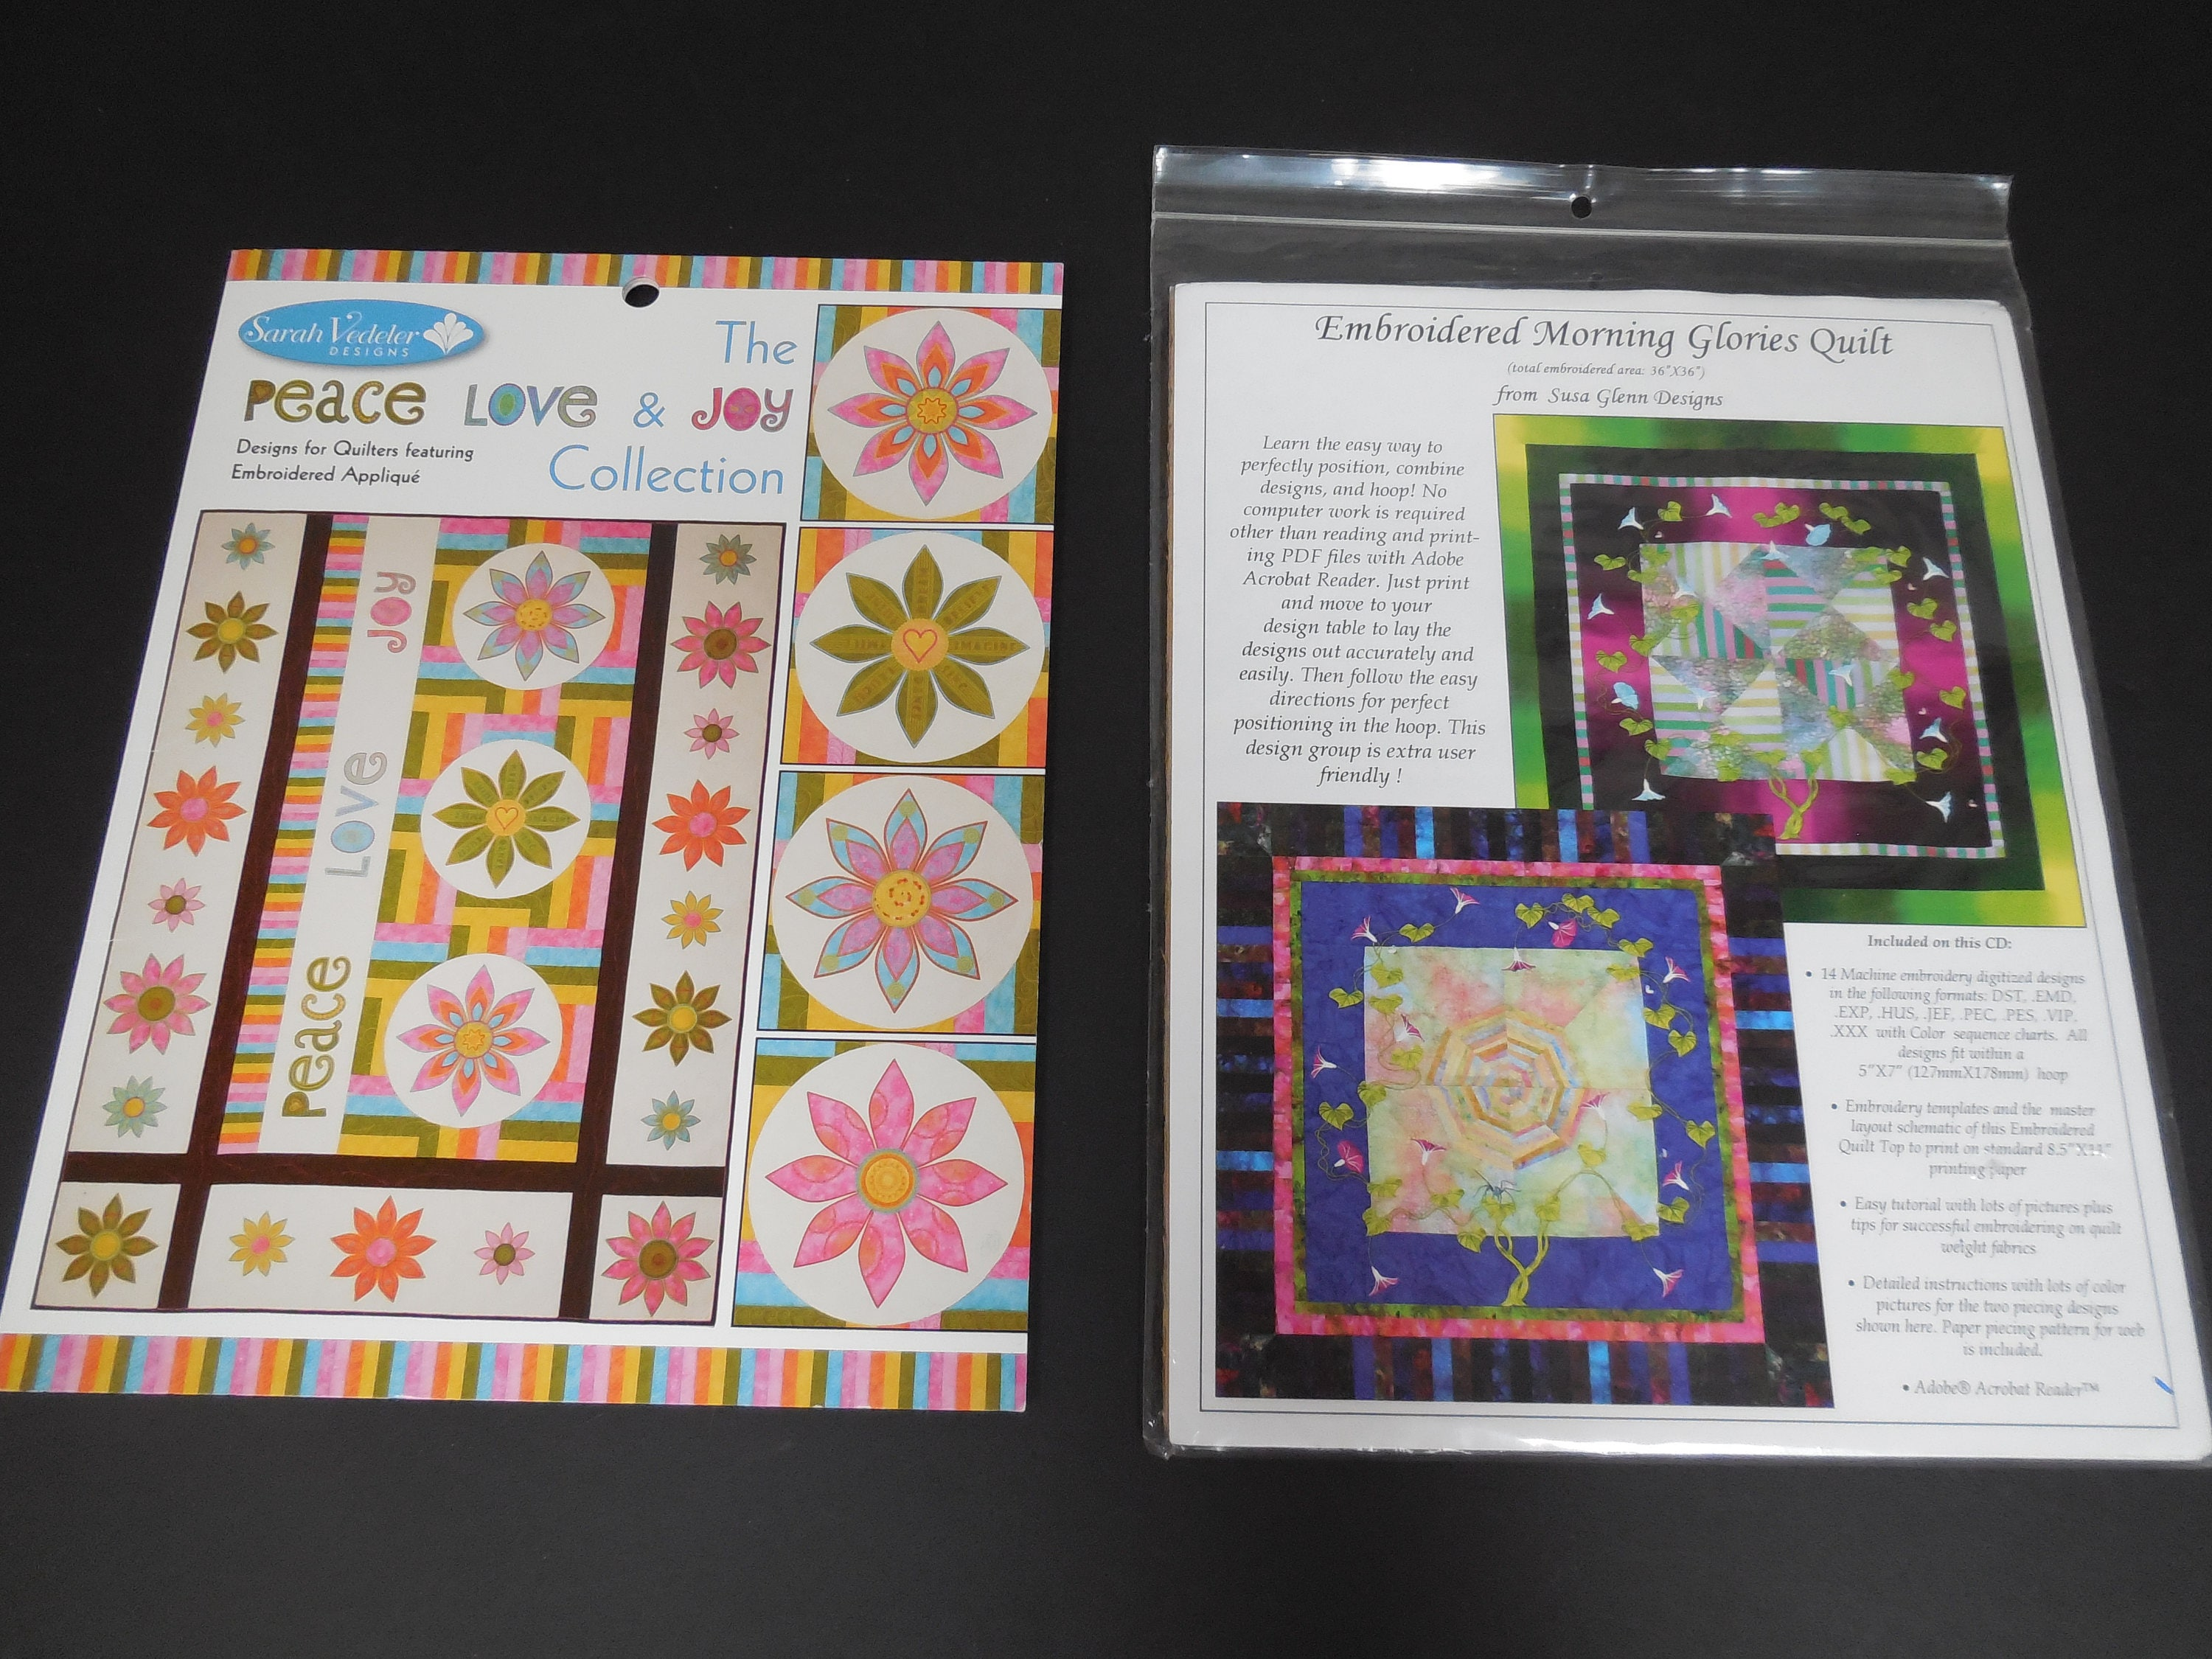 Embroidery Design Cds And Patterns For Quilts